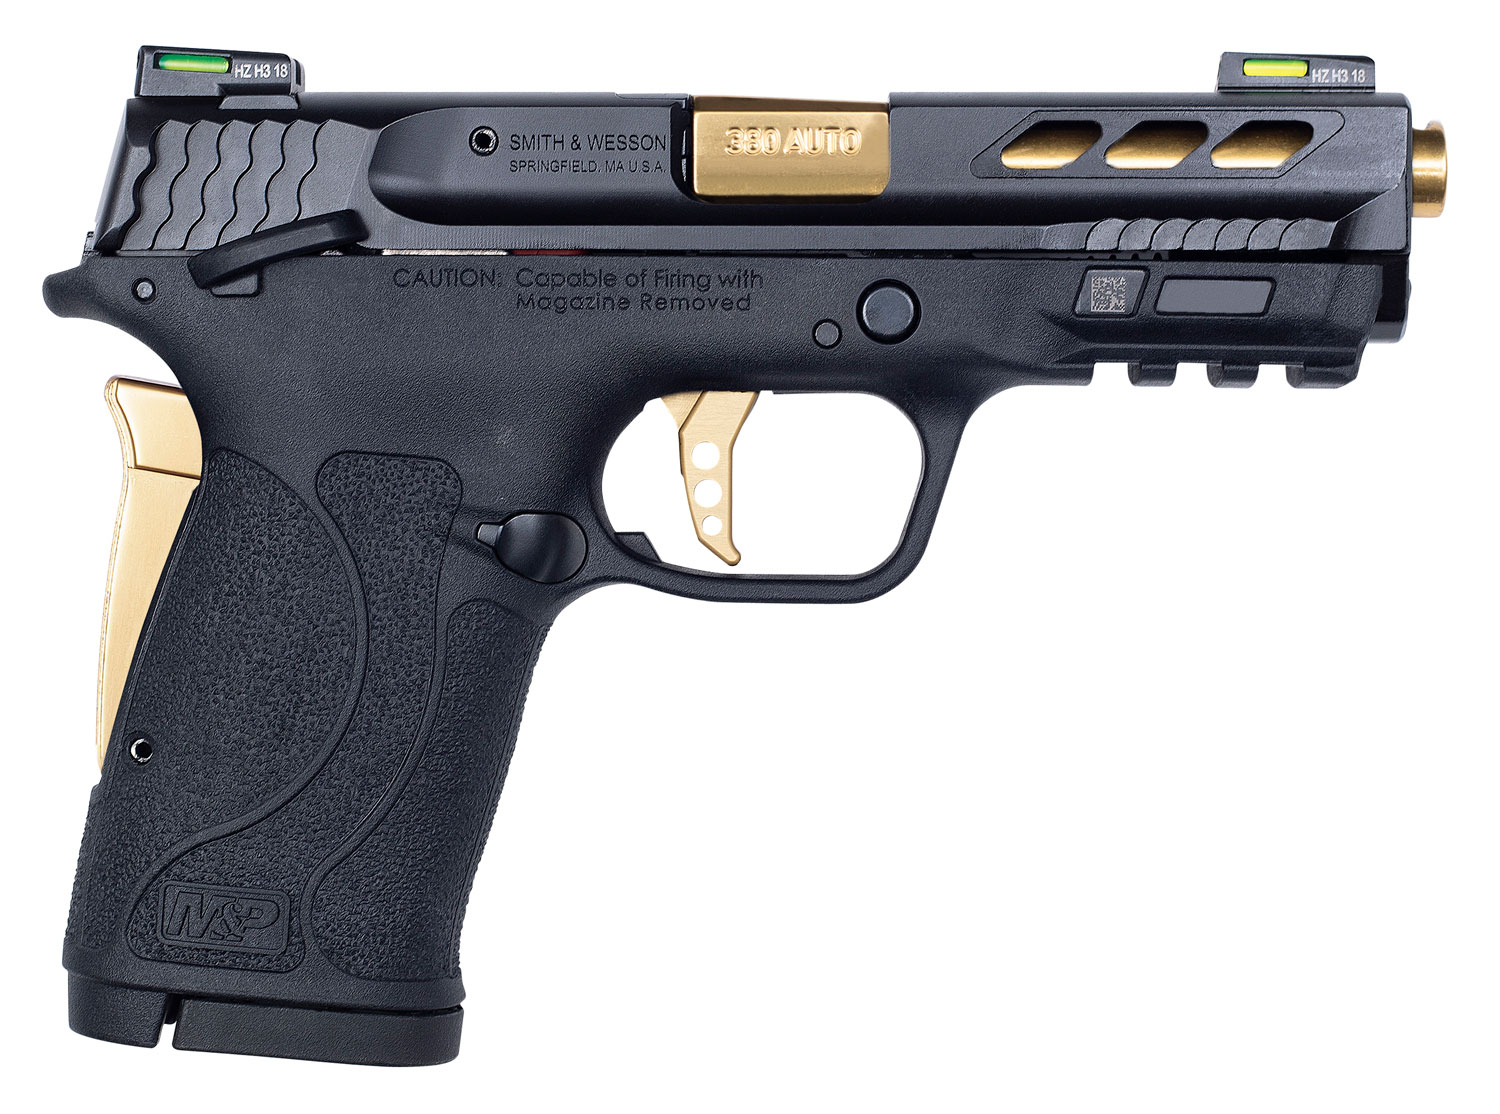 Smith & Wesson 12719 Performance Center 380 Shield EZ 380 Automatic Colt Pistol (ACP) Double 3.8